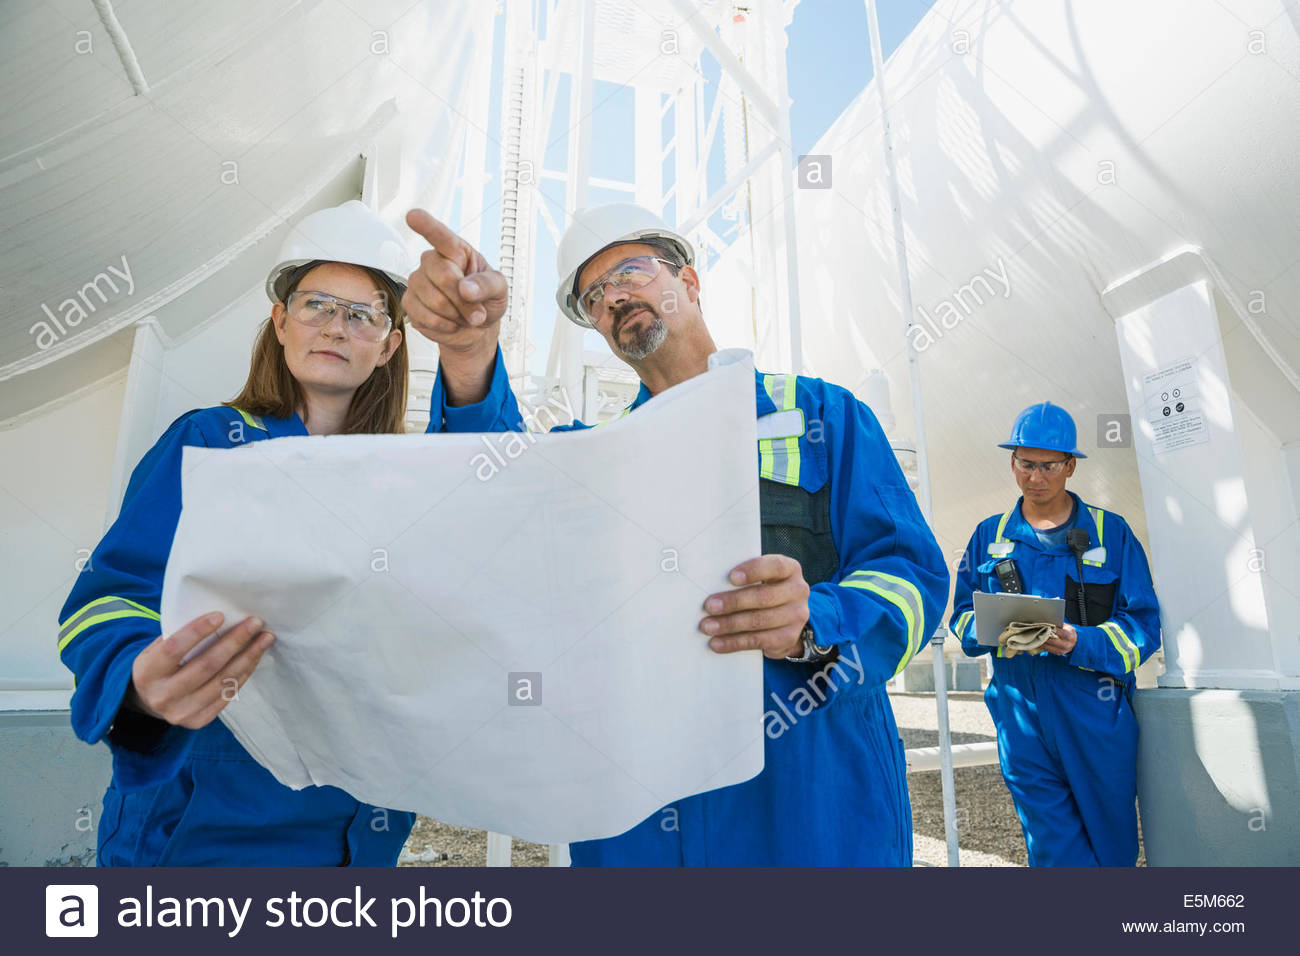 Workers with blueprints at gas plant - Stock Image